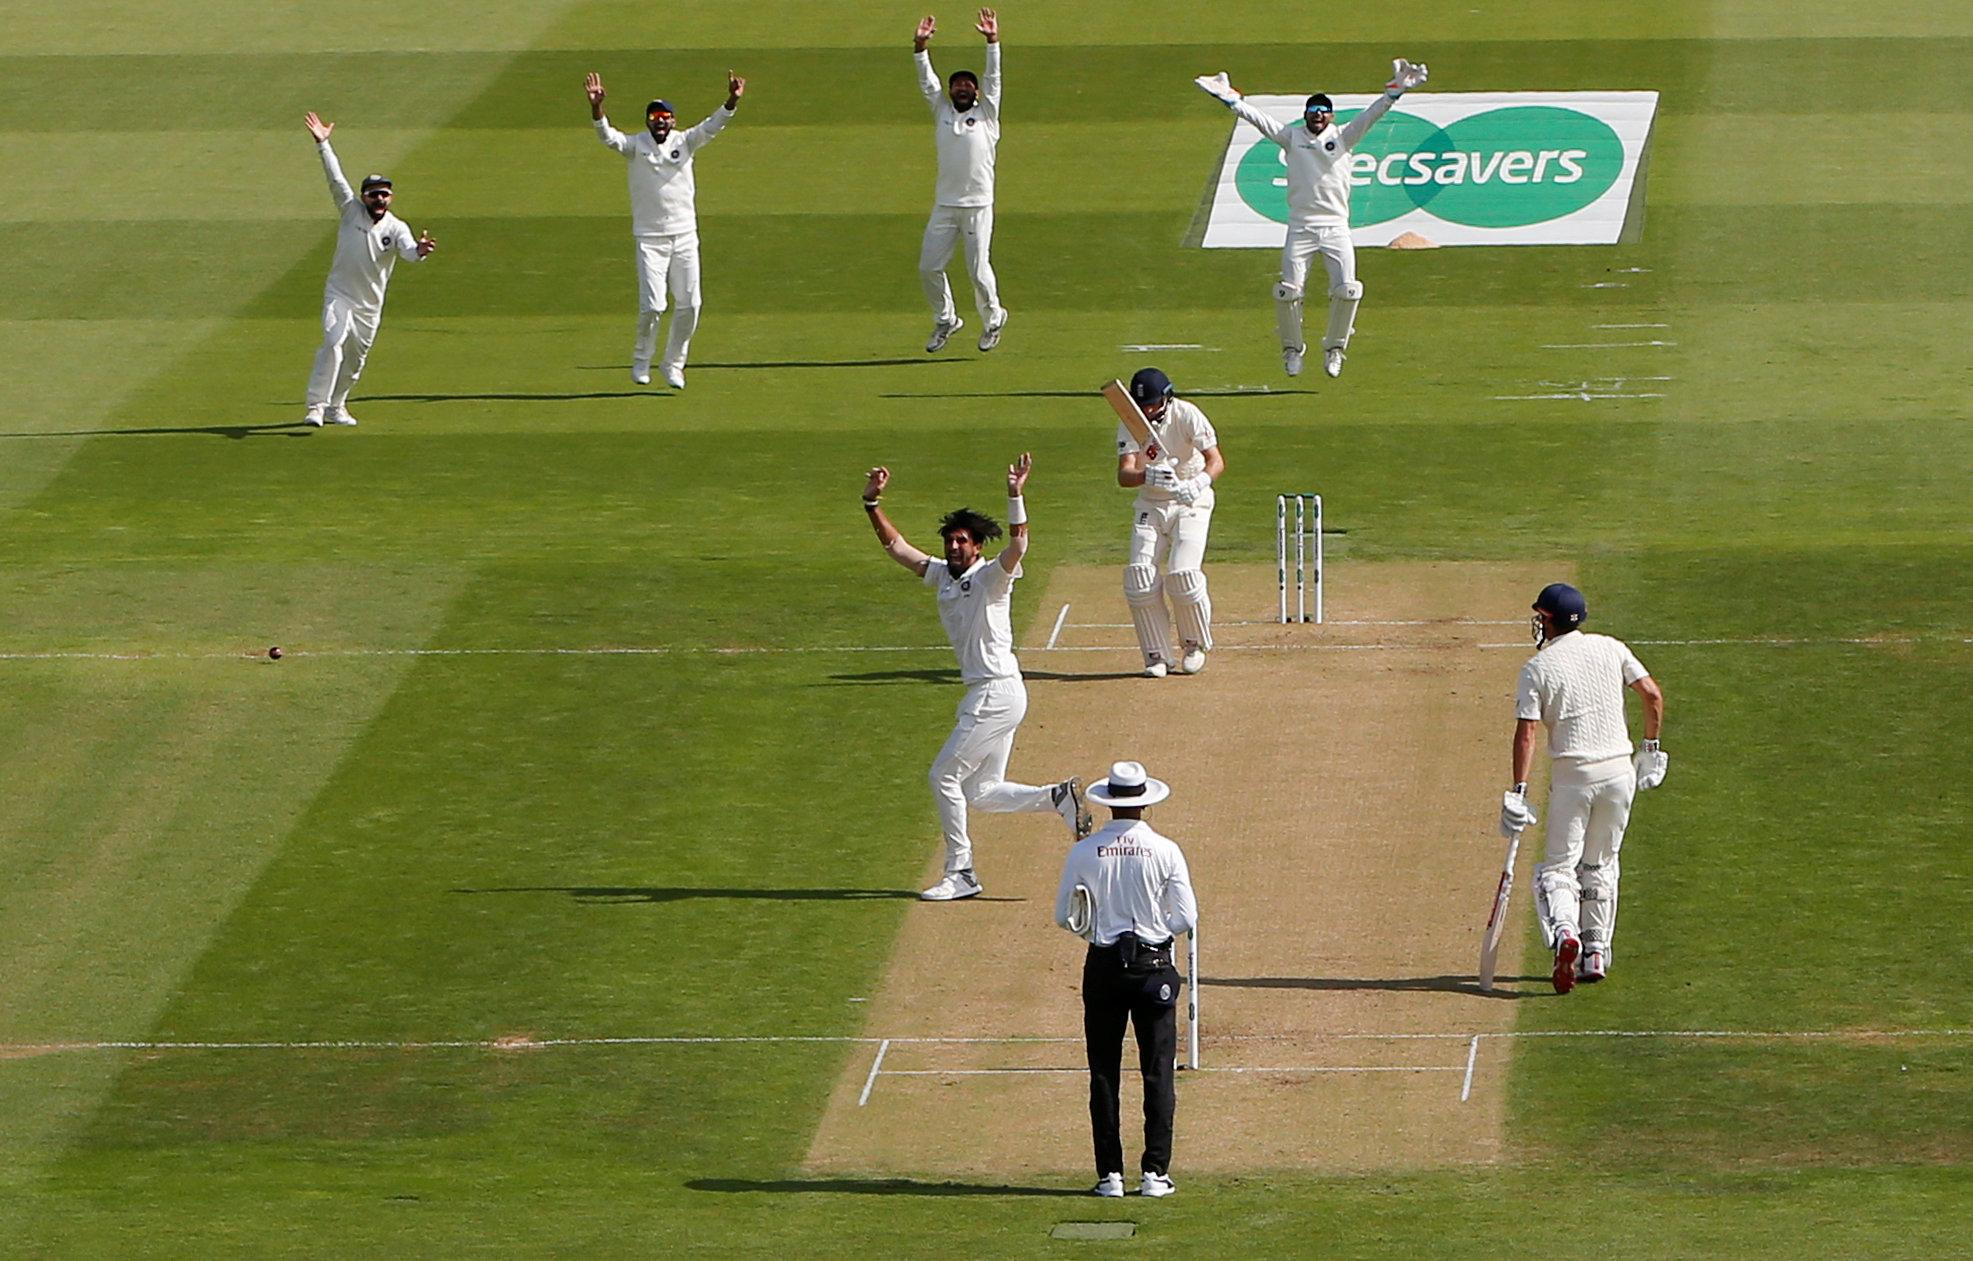 Joe Root survived an early lbw reprieve thanks to a no-ball but was soon trapped in front again